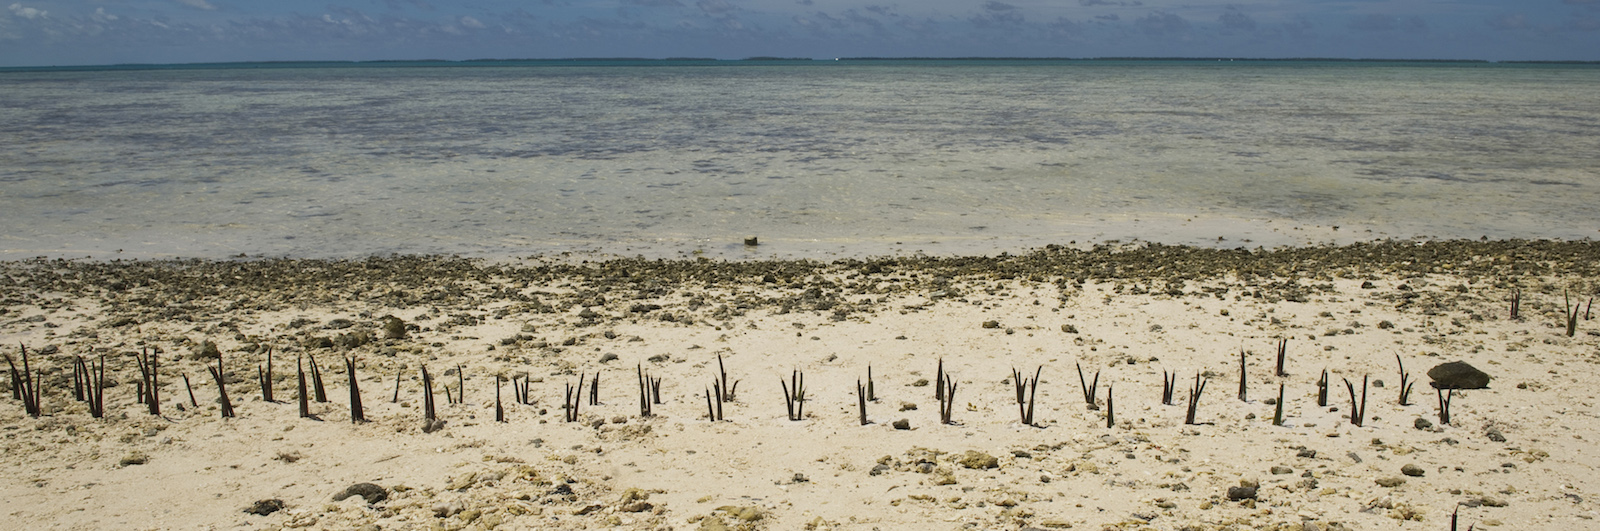 Climate change effects in Tarawa, an atoll in Kiribati (Photo: United Nations photo/ Flickr)